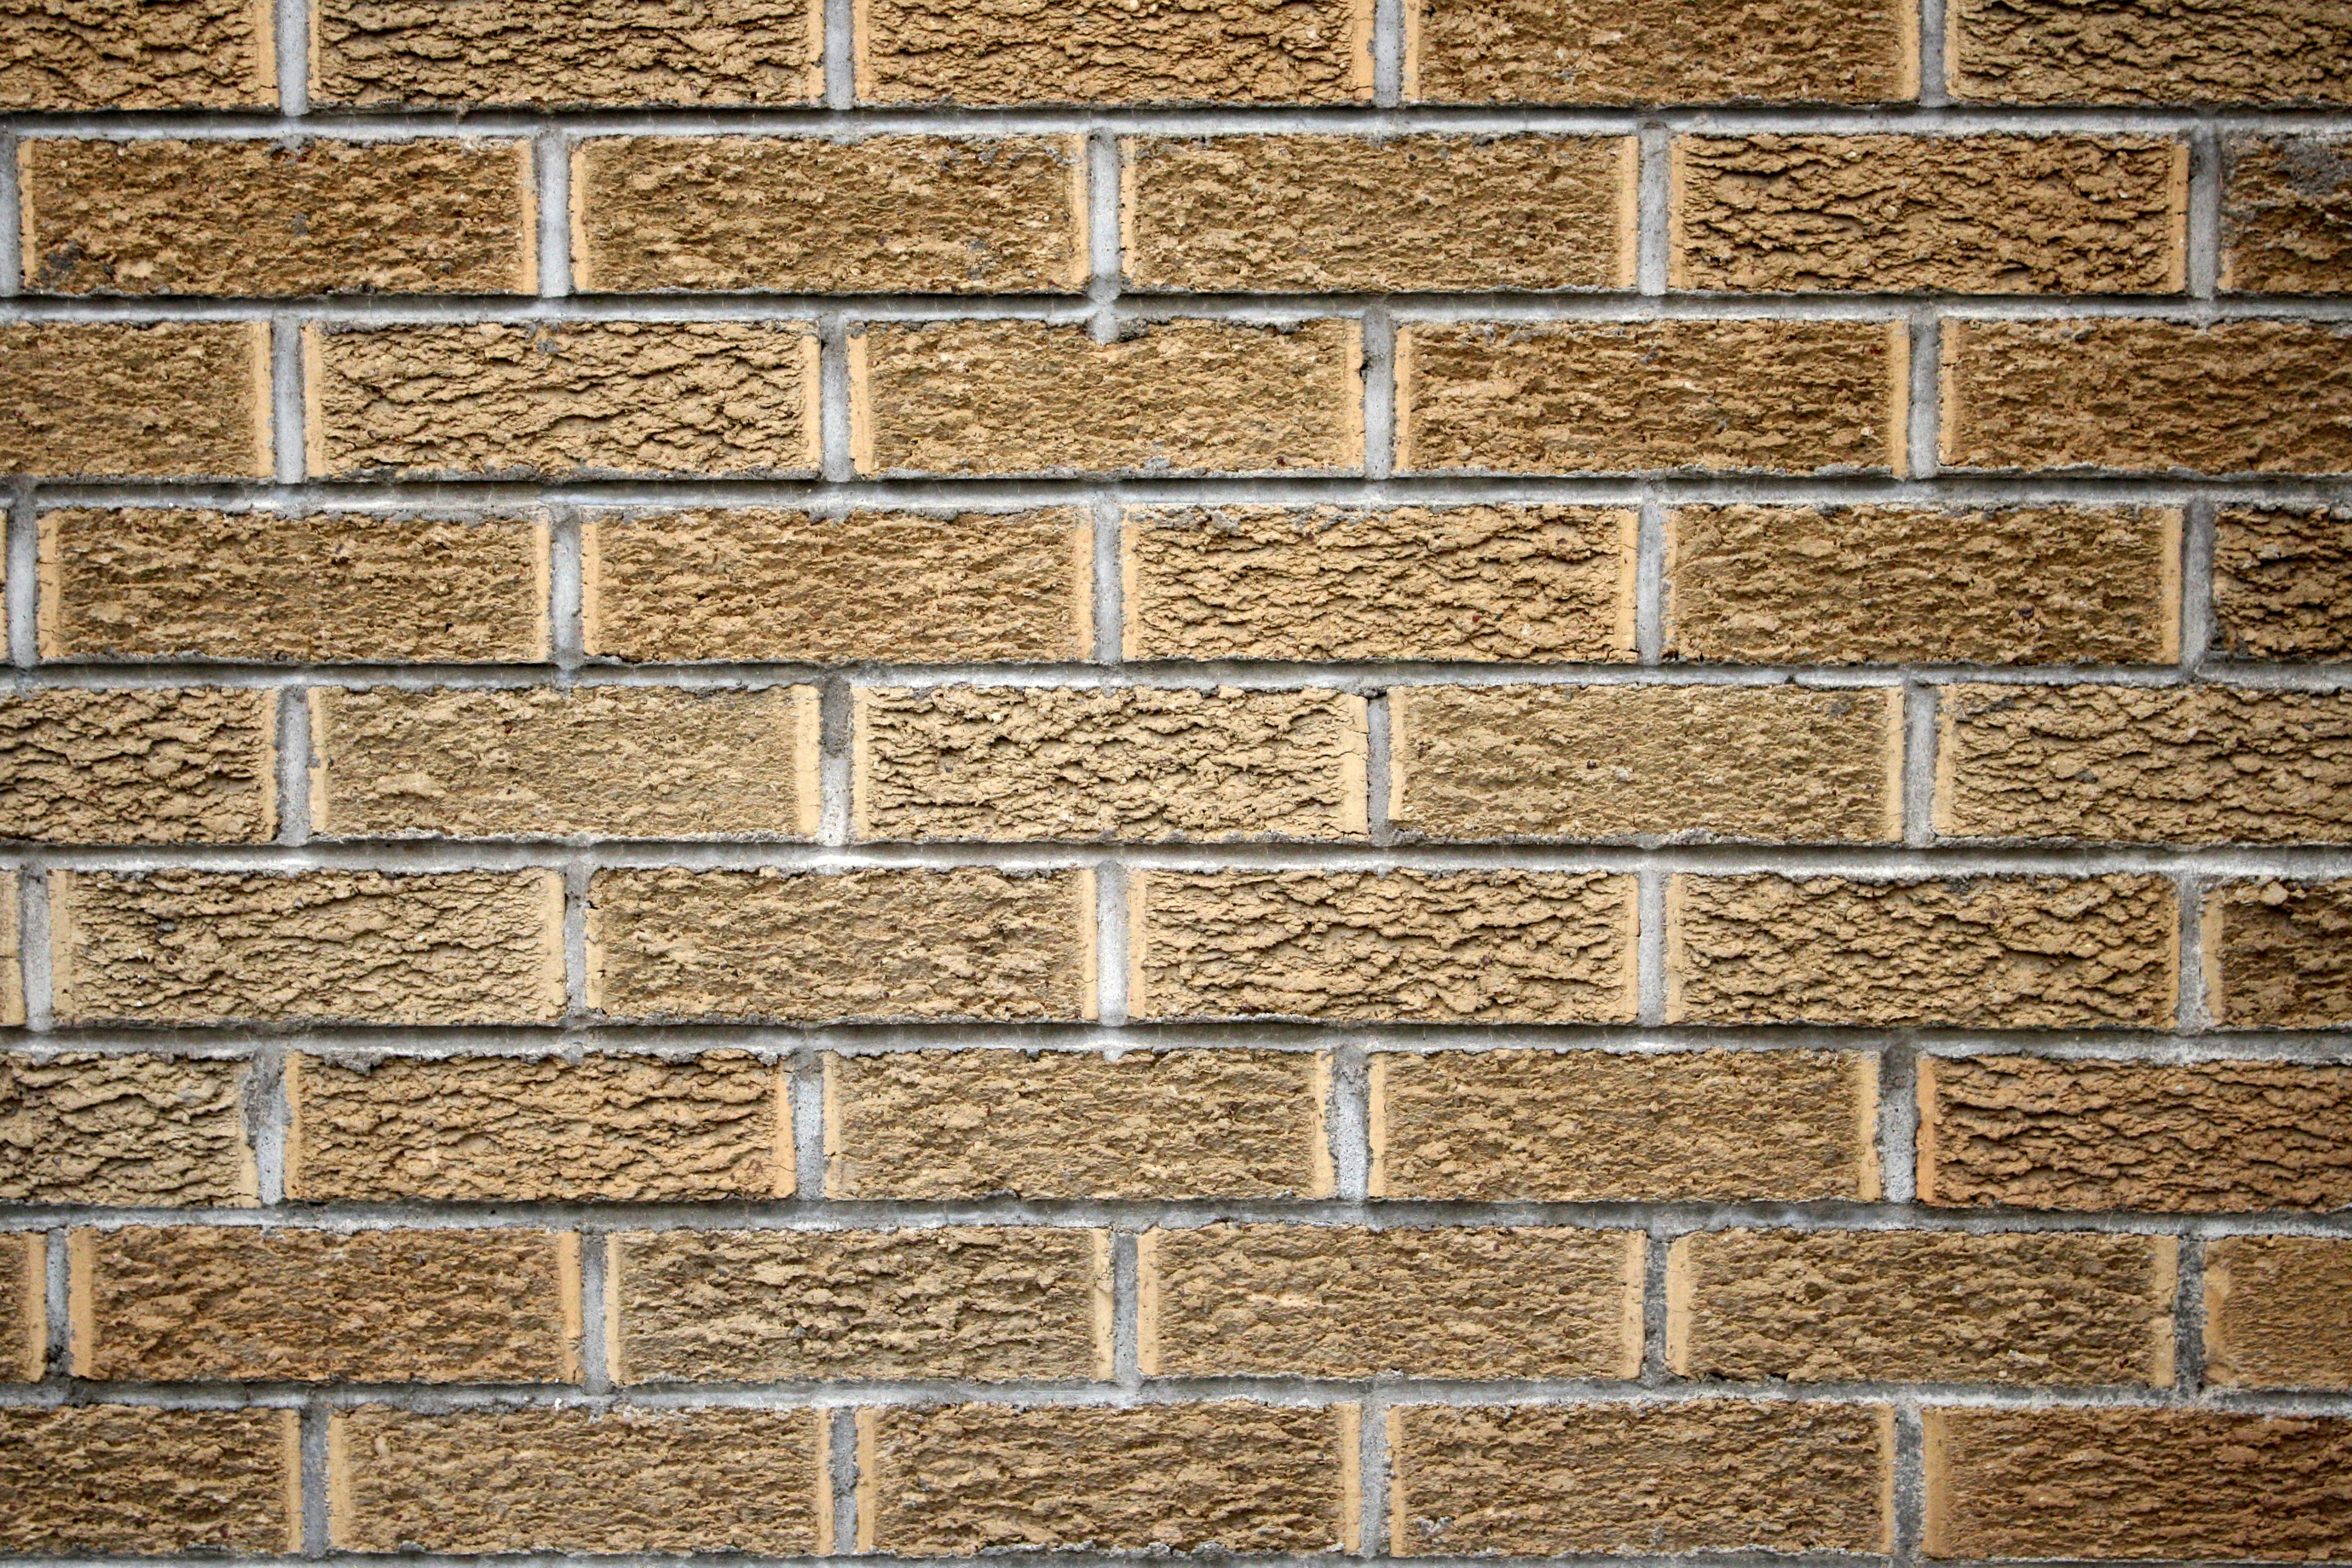 Wall Texture Design Images : Blonde brick wall texture picture free photograph